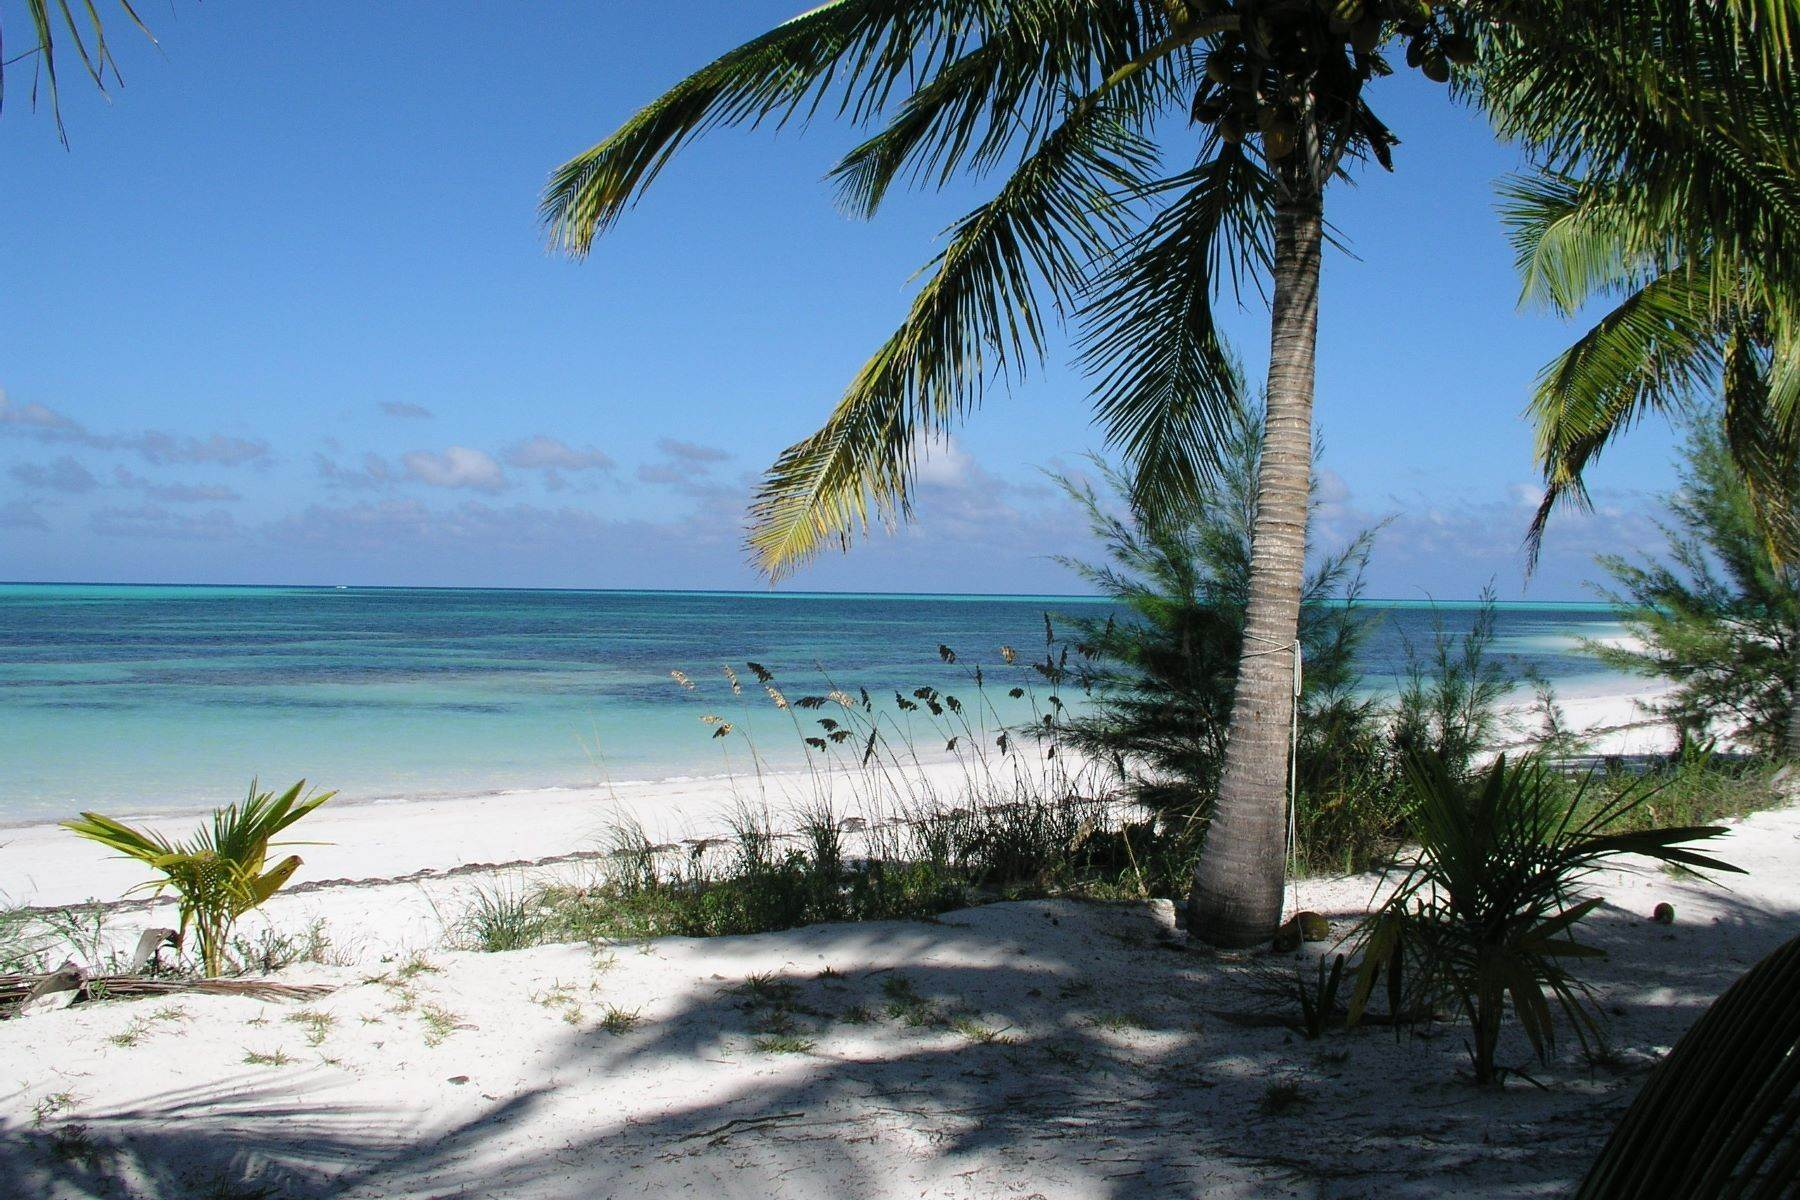 Single Family Homes for Sale at Tranquility - Beachfront Cottage Spanish Wells, Eleuthera Bahamas